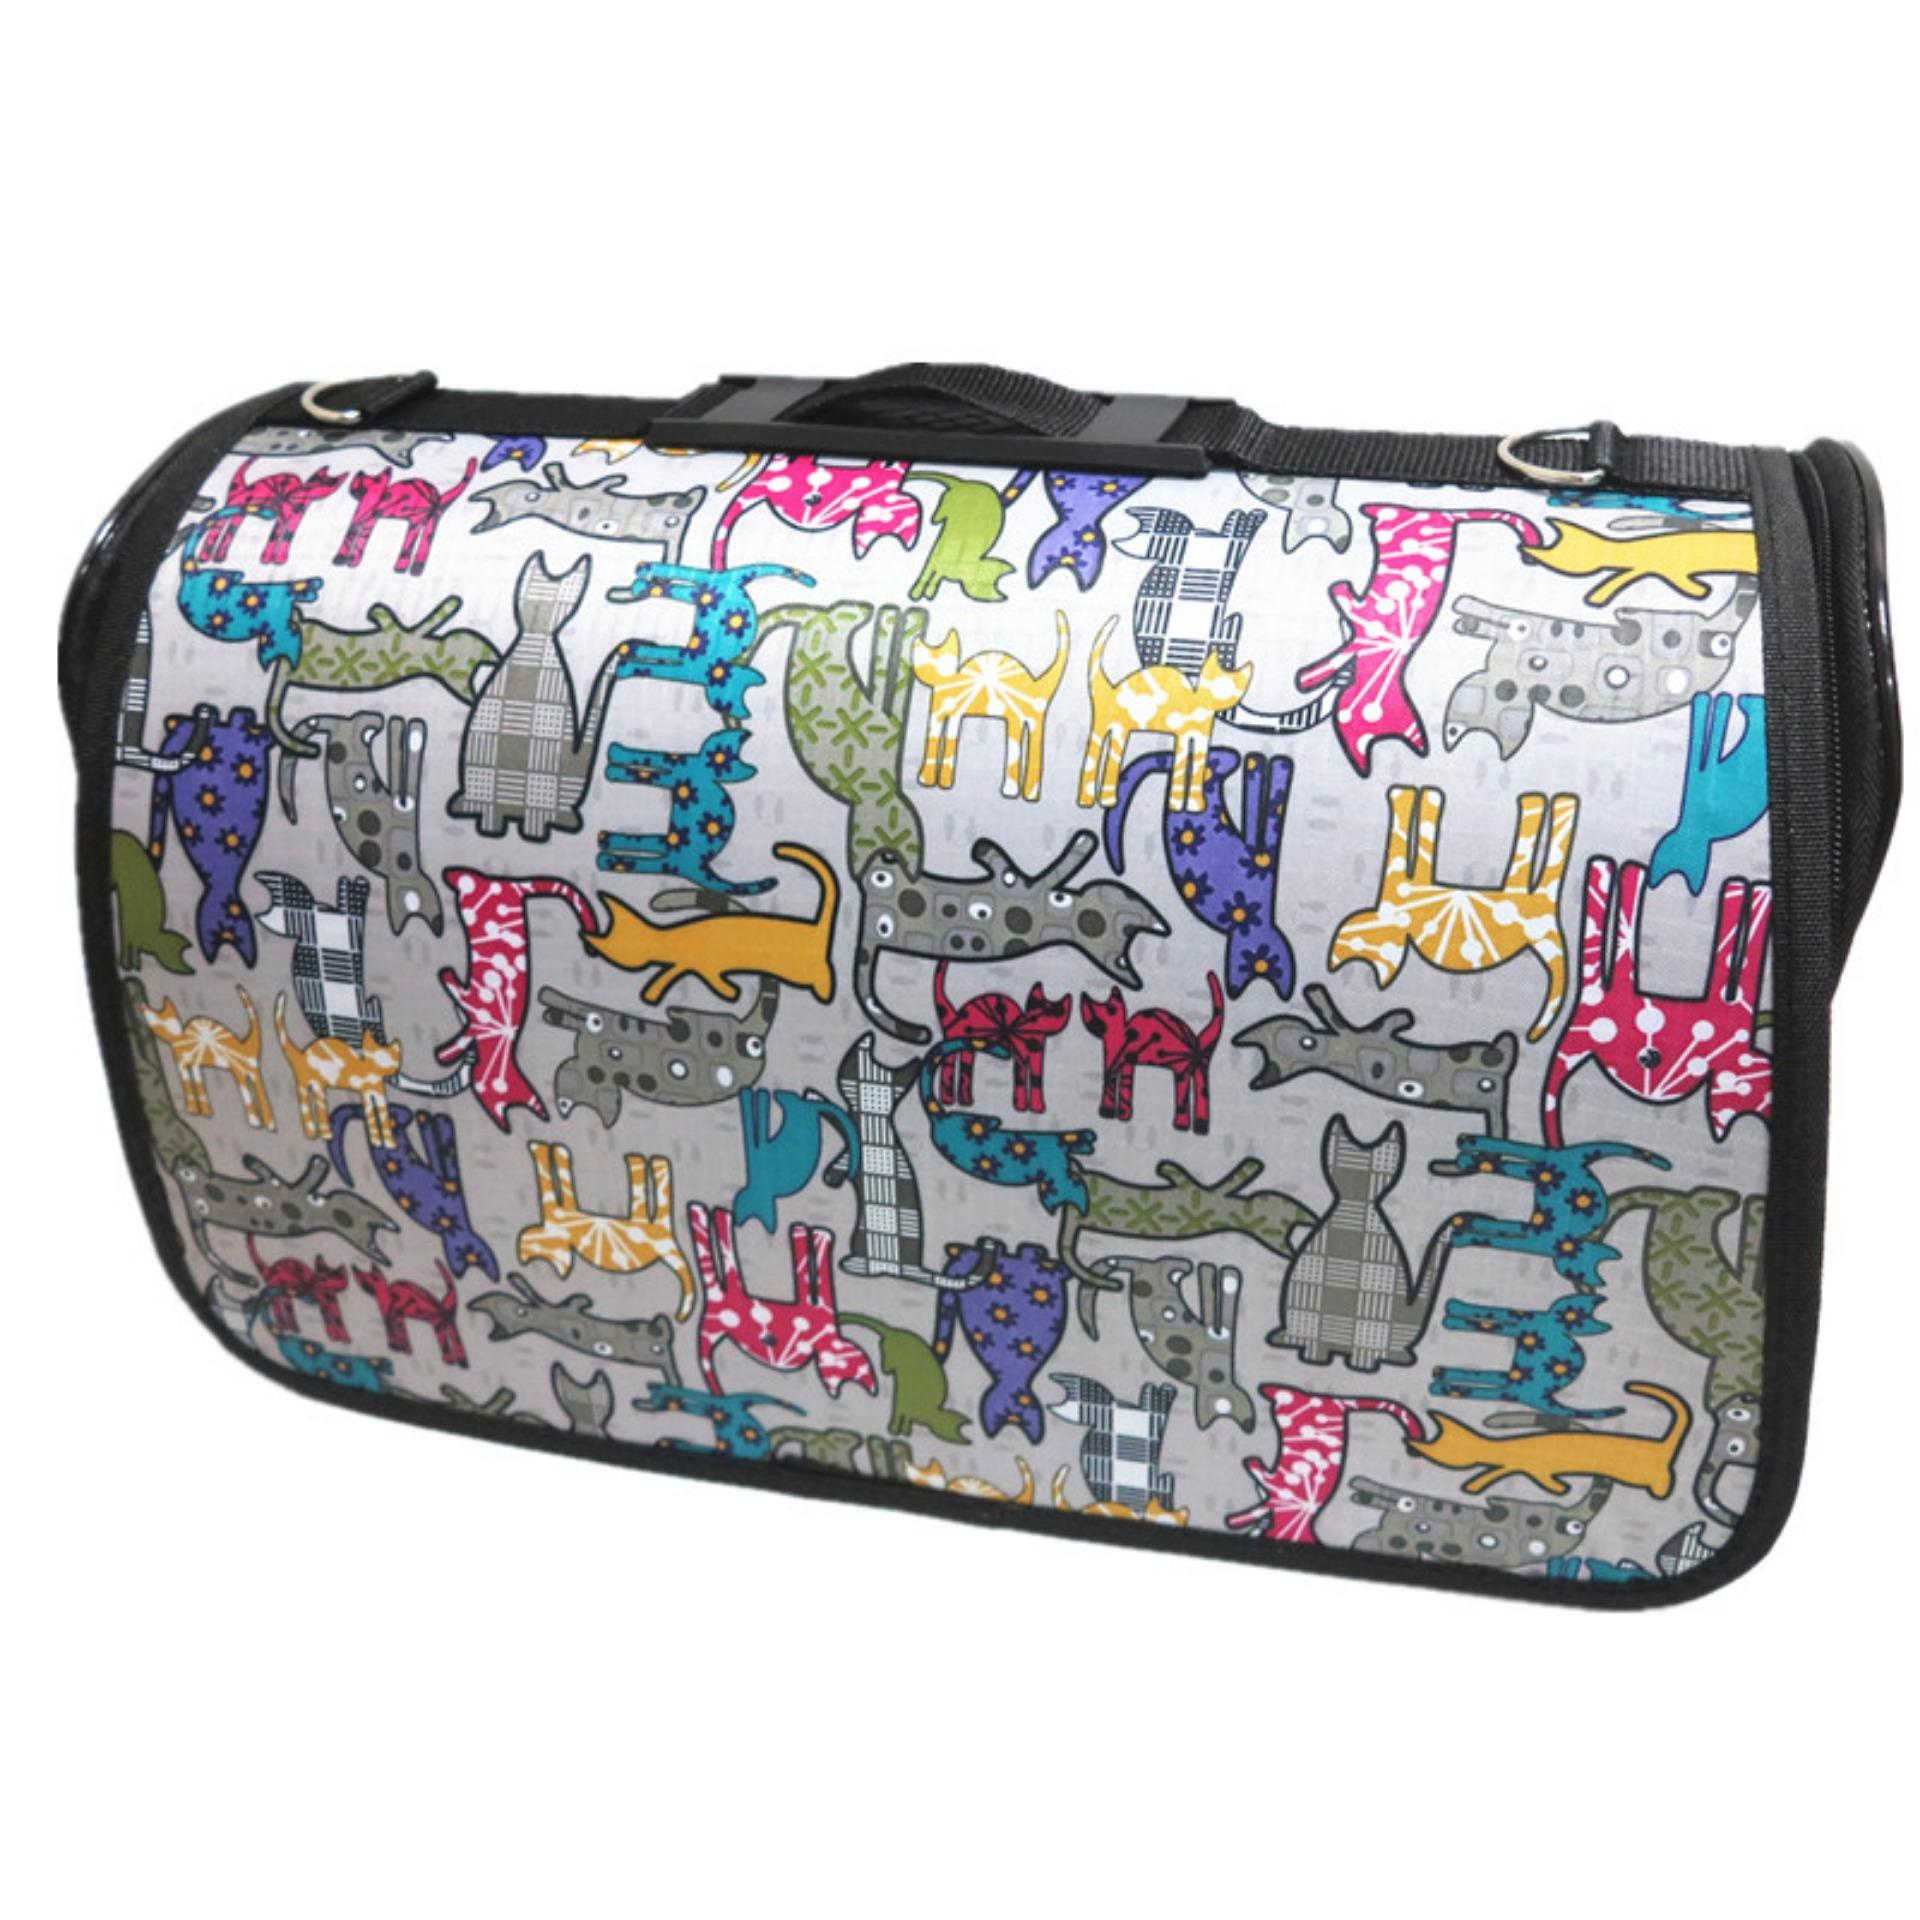 ADDA HOME - Recommended!!! Waterproof Pet Carrier Bag / Tas Peliharaan Anjing Kucing 43x26x24cm - Silver